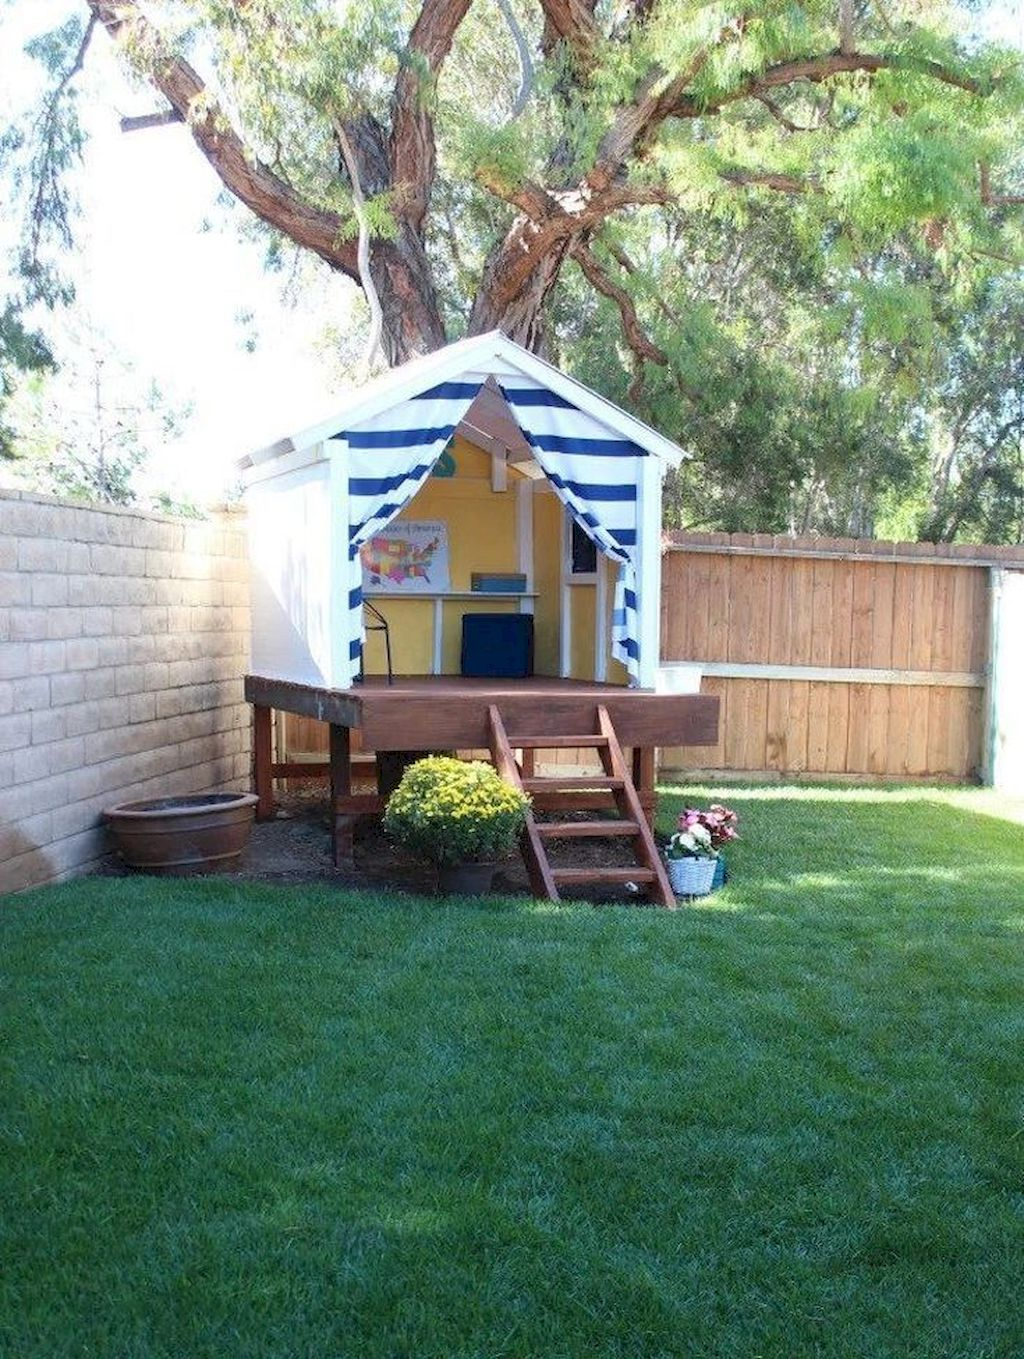 Wonderful Playhouse Plan Into Your Existing Backyard Space